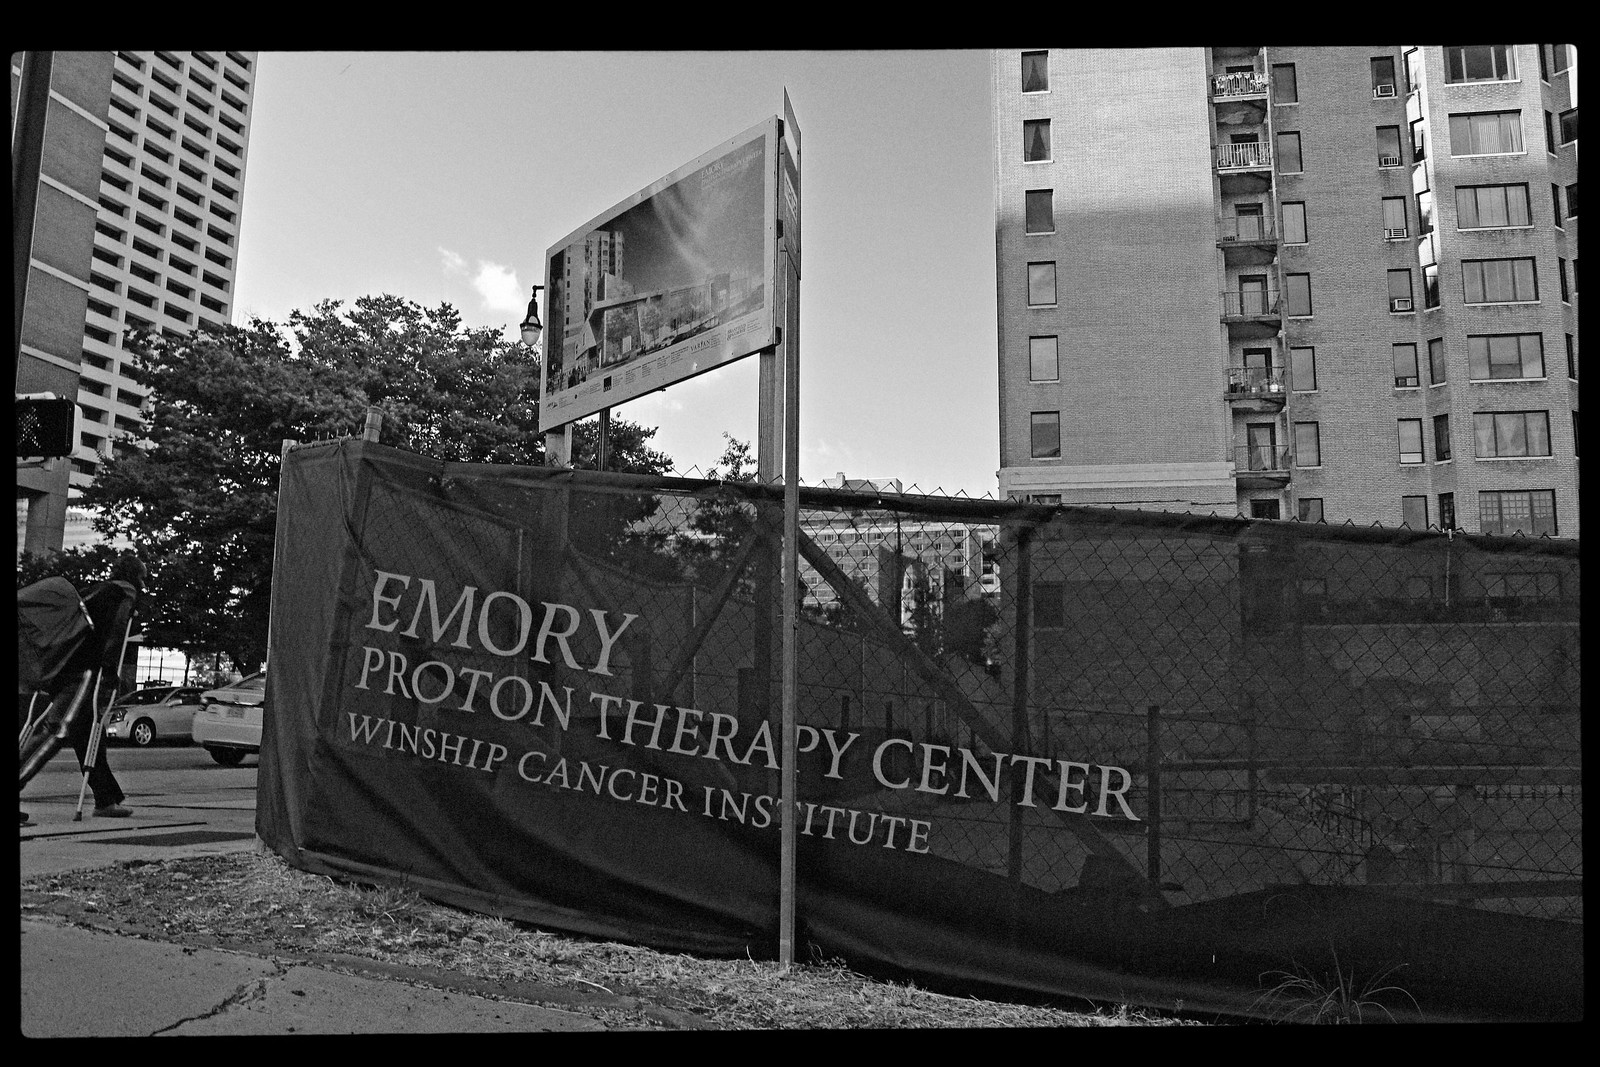 Emory Proton Therapy Center Construction Site, Midtown Atlanta, Sept 2015